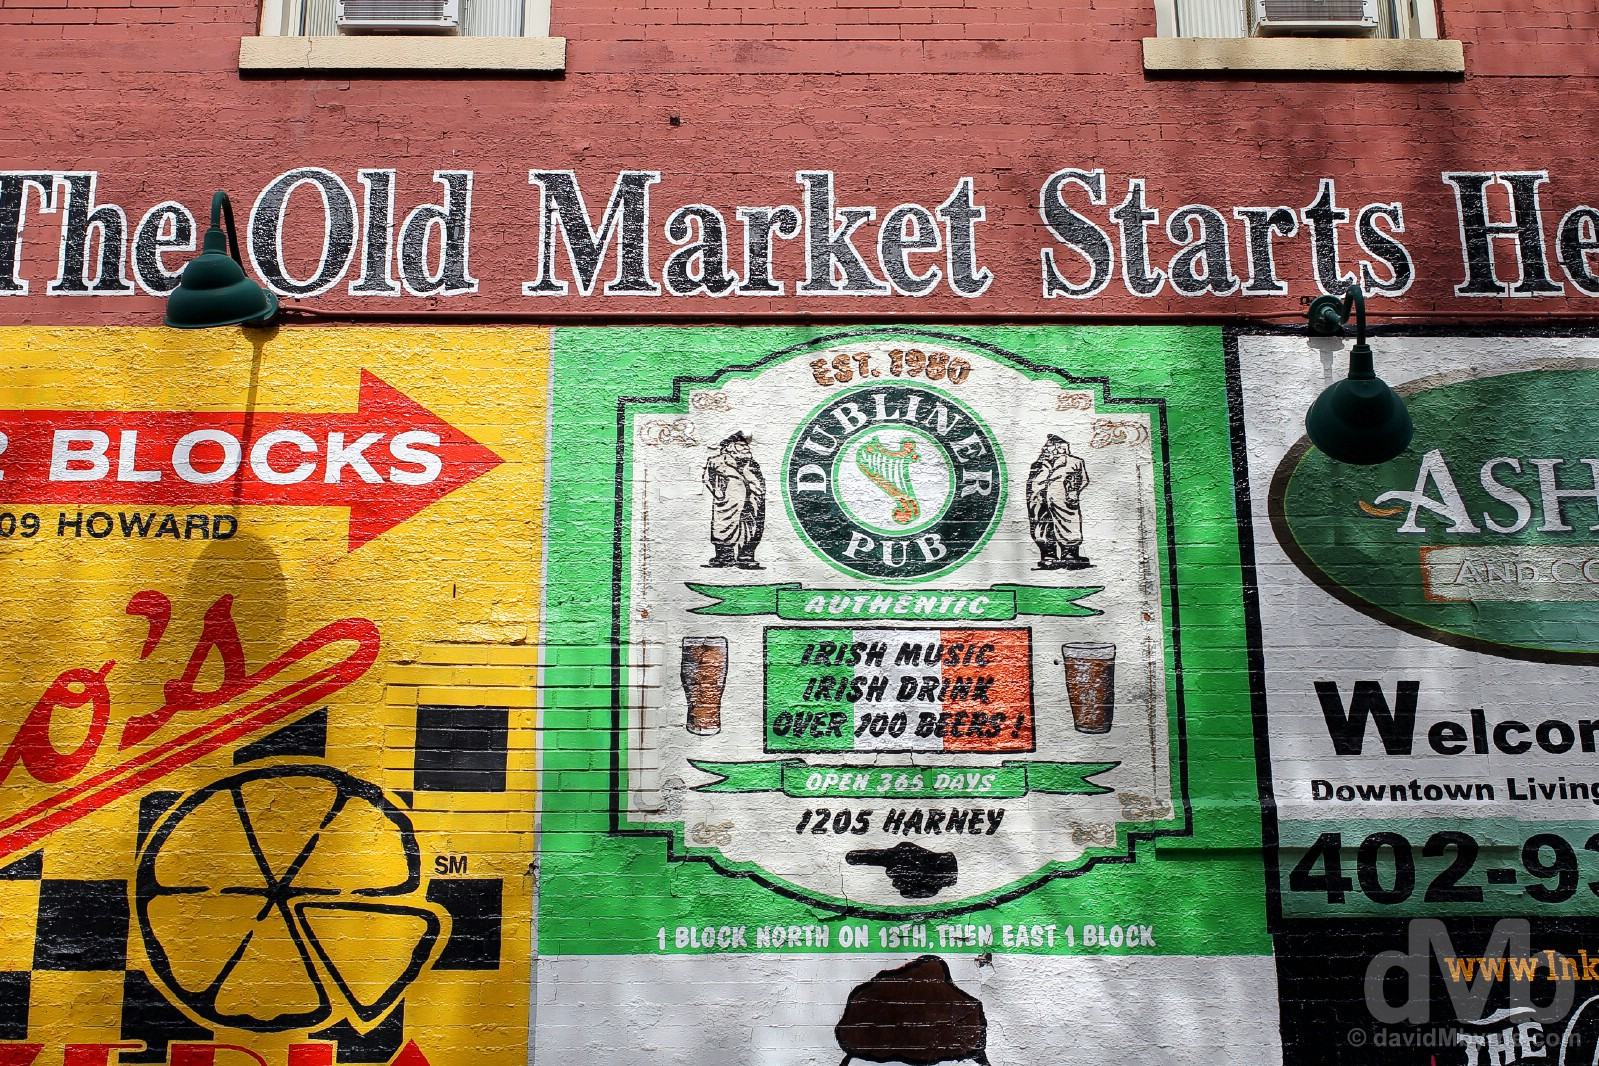 The Old Market, Howard Street, Omaha, Nebraska, USA. September 16, 2016.